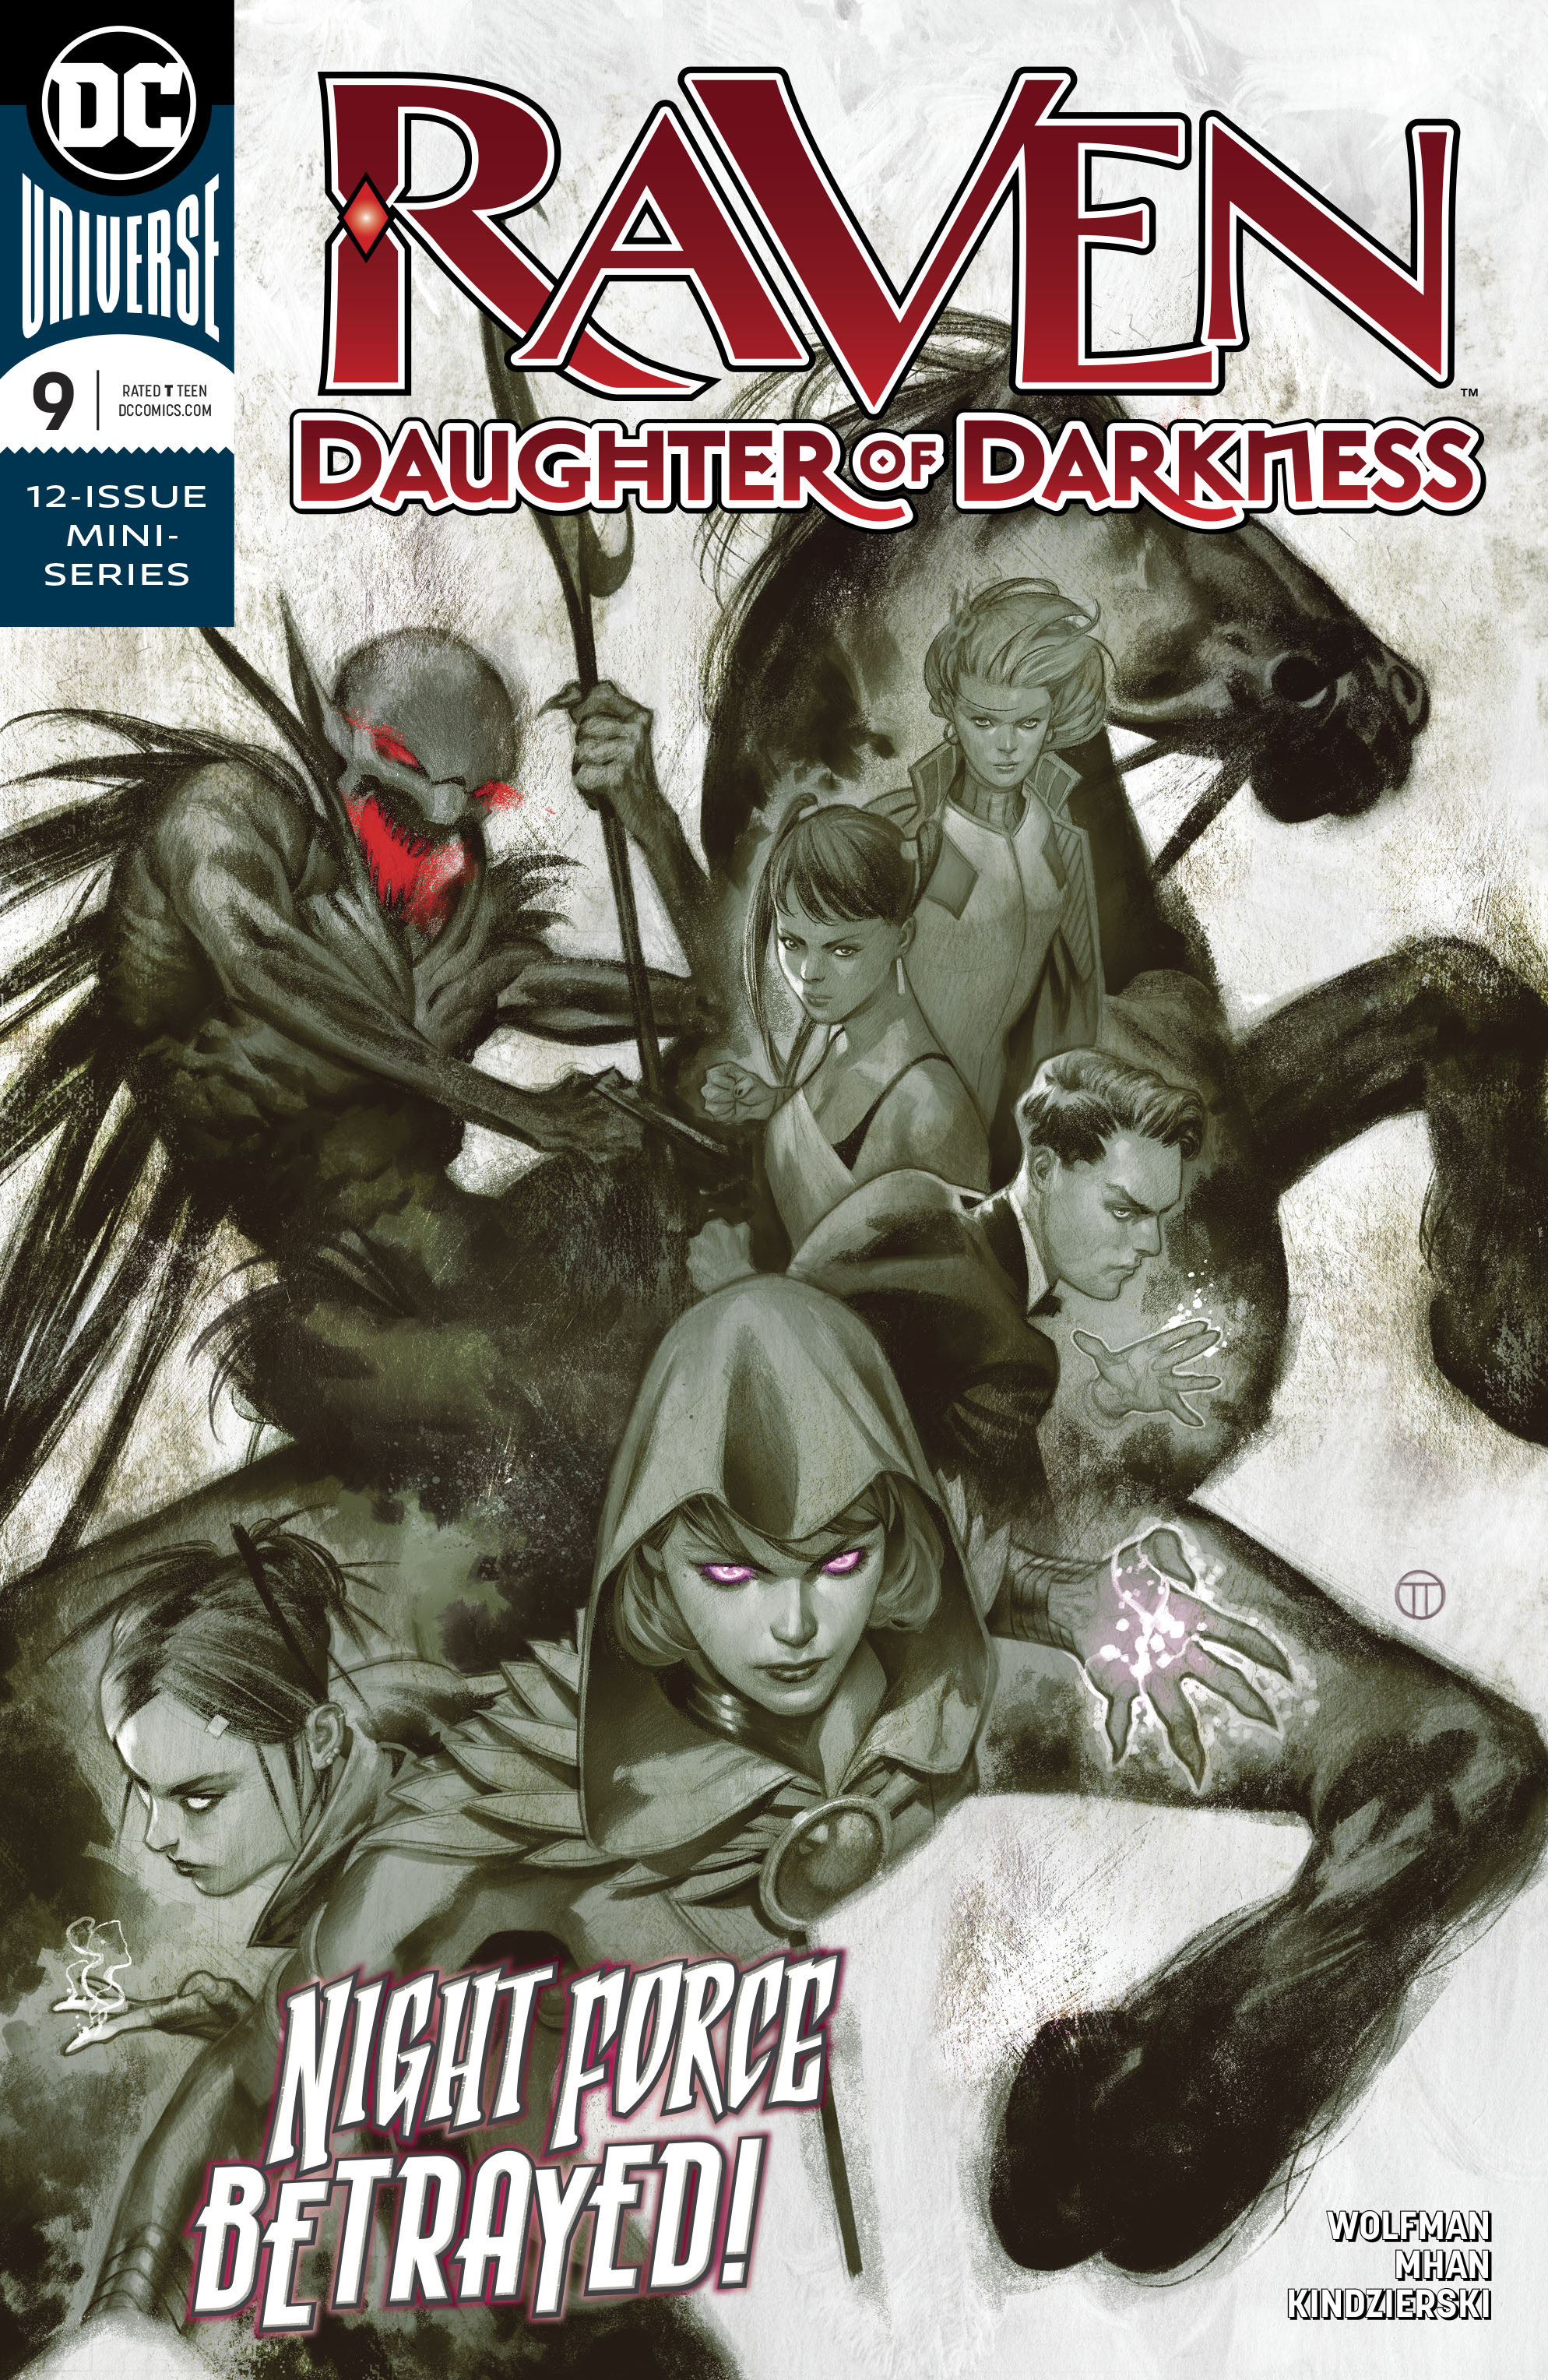 RAVEN DAUGHTER OF DARKNESS #9 (OF 12)